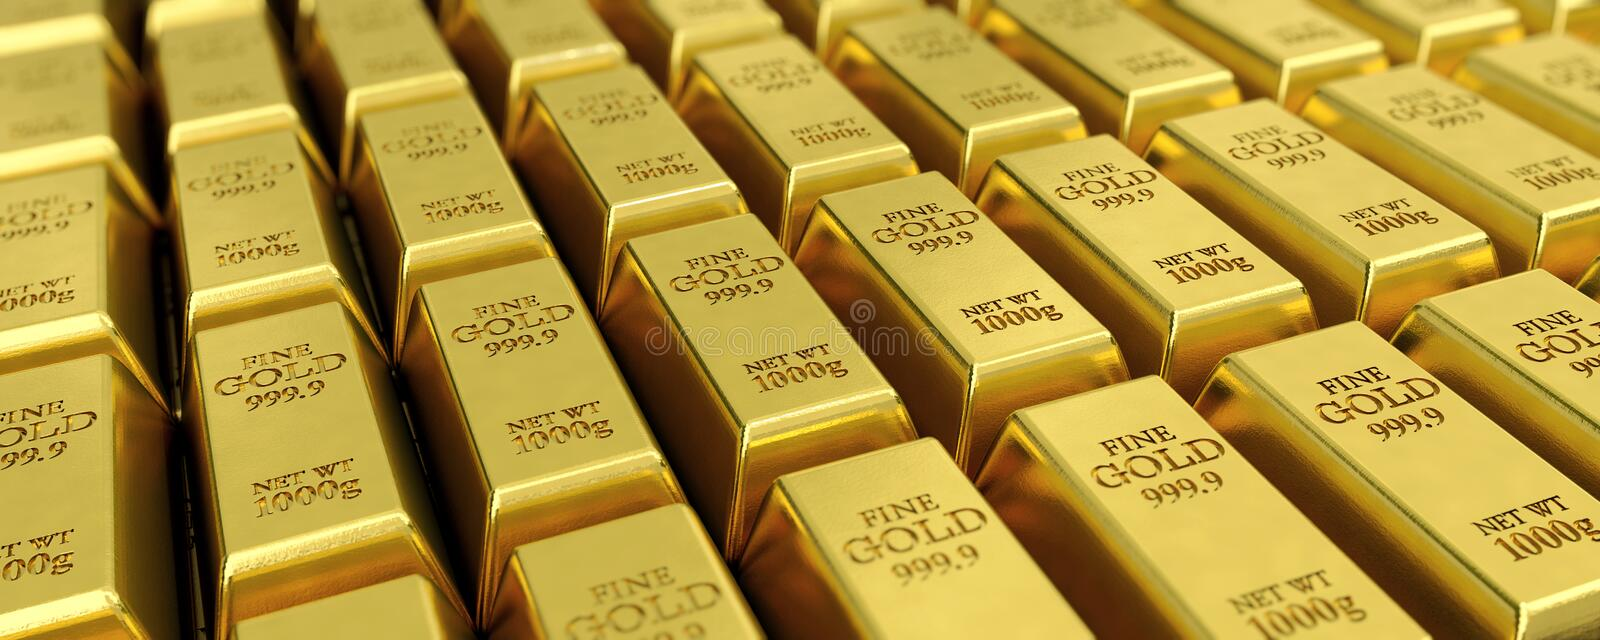 Many gold bars. 3D illustration for example as background image royalty free illustration